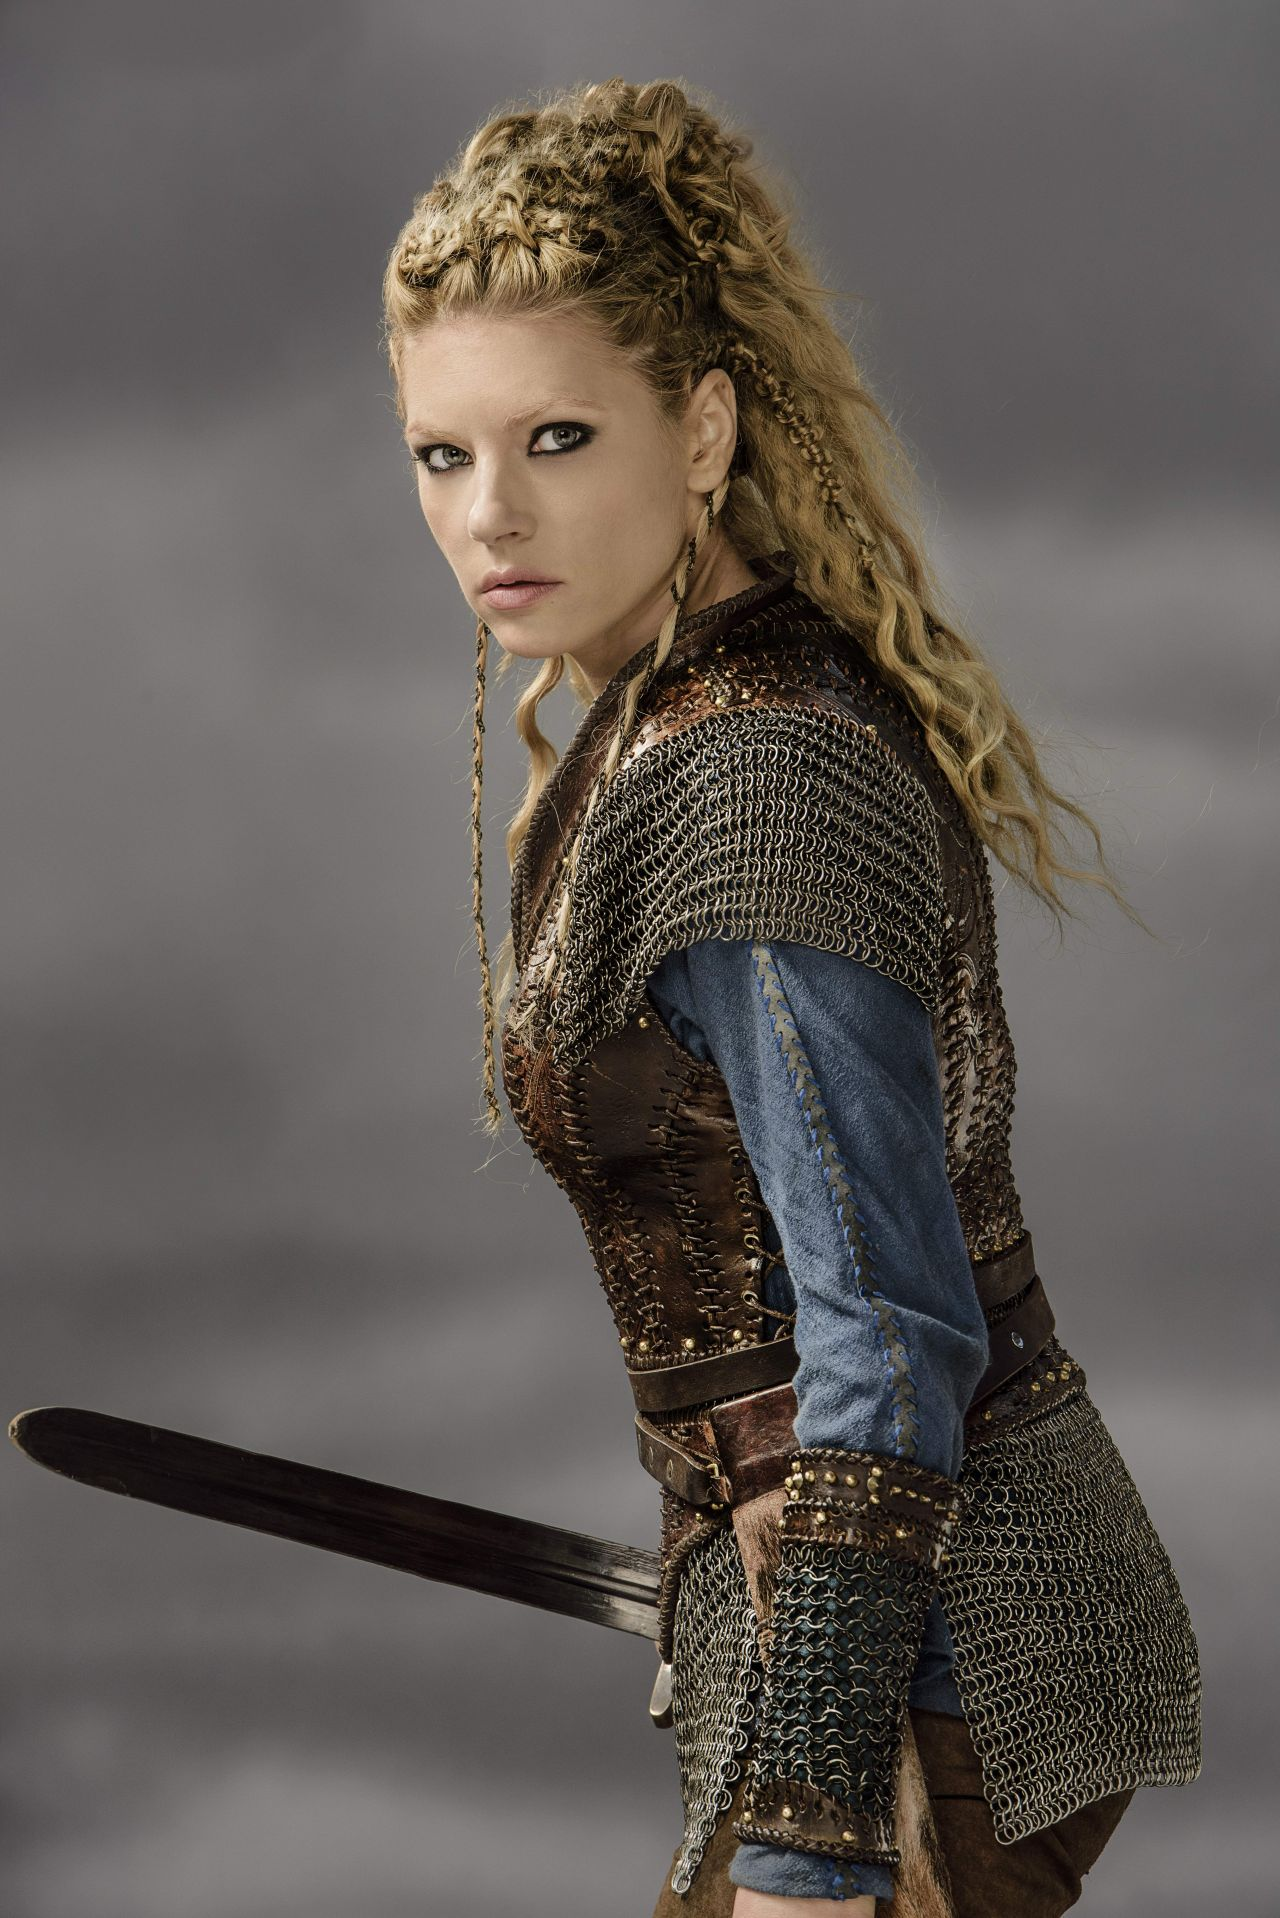 Katheryn Winnick - Vikings Season 3 Promo Photos-1373